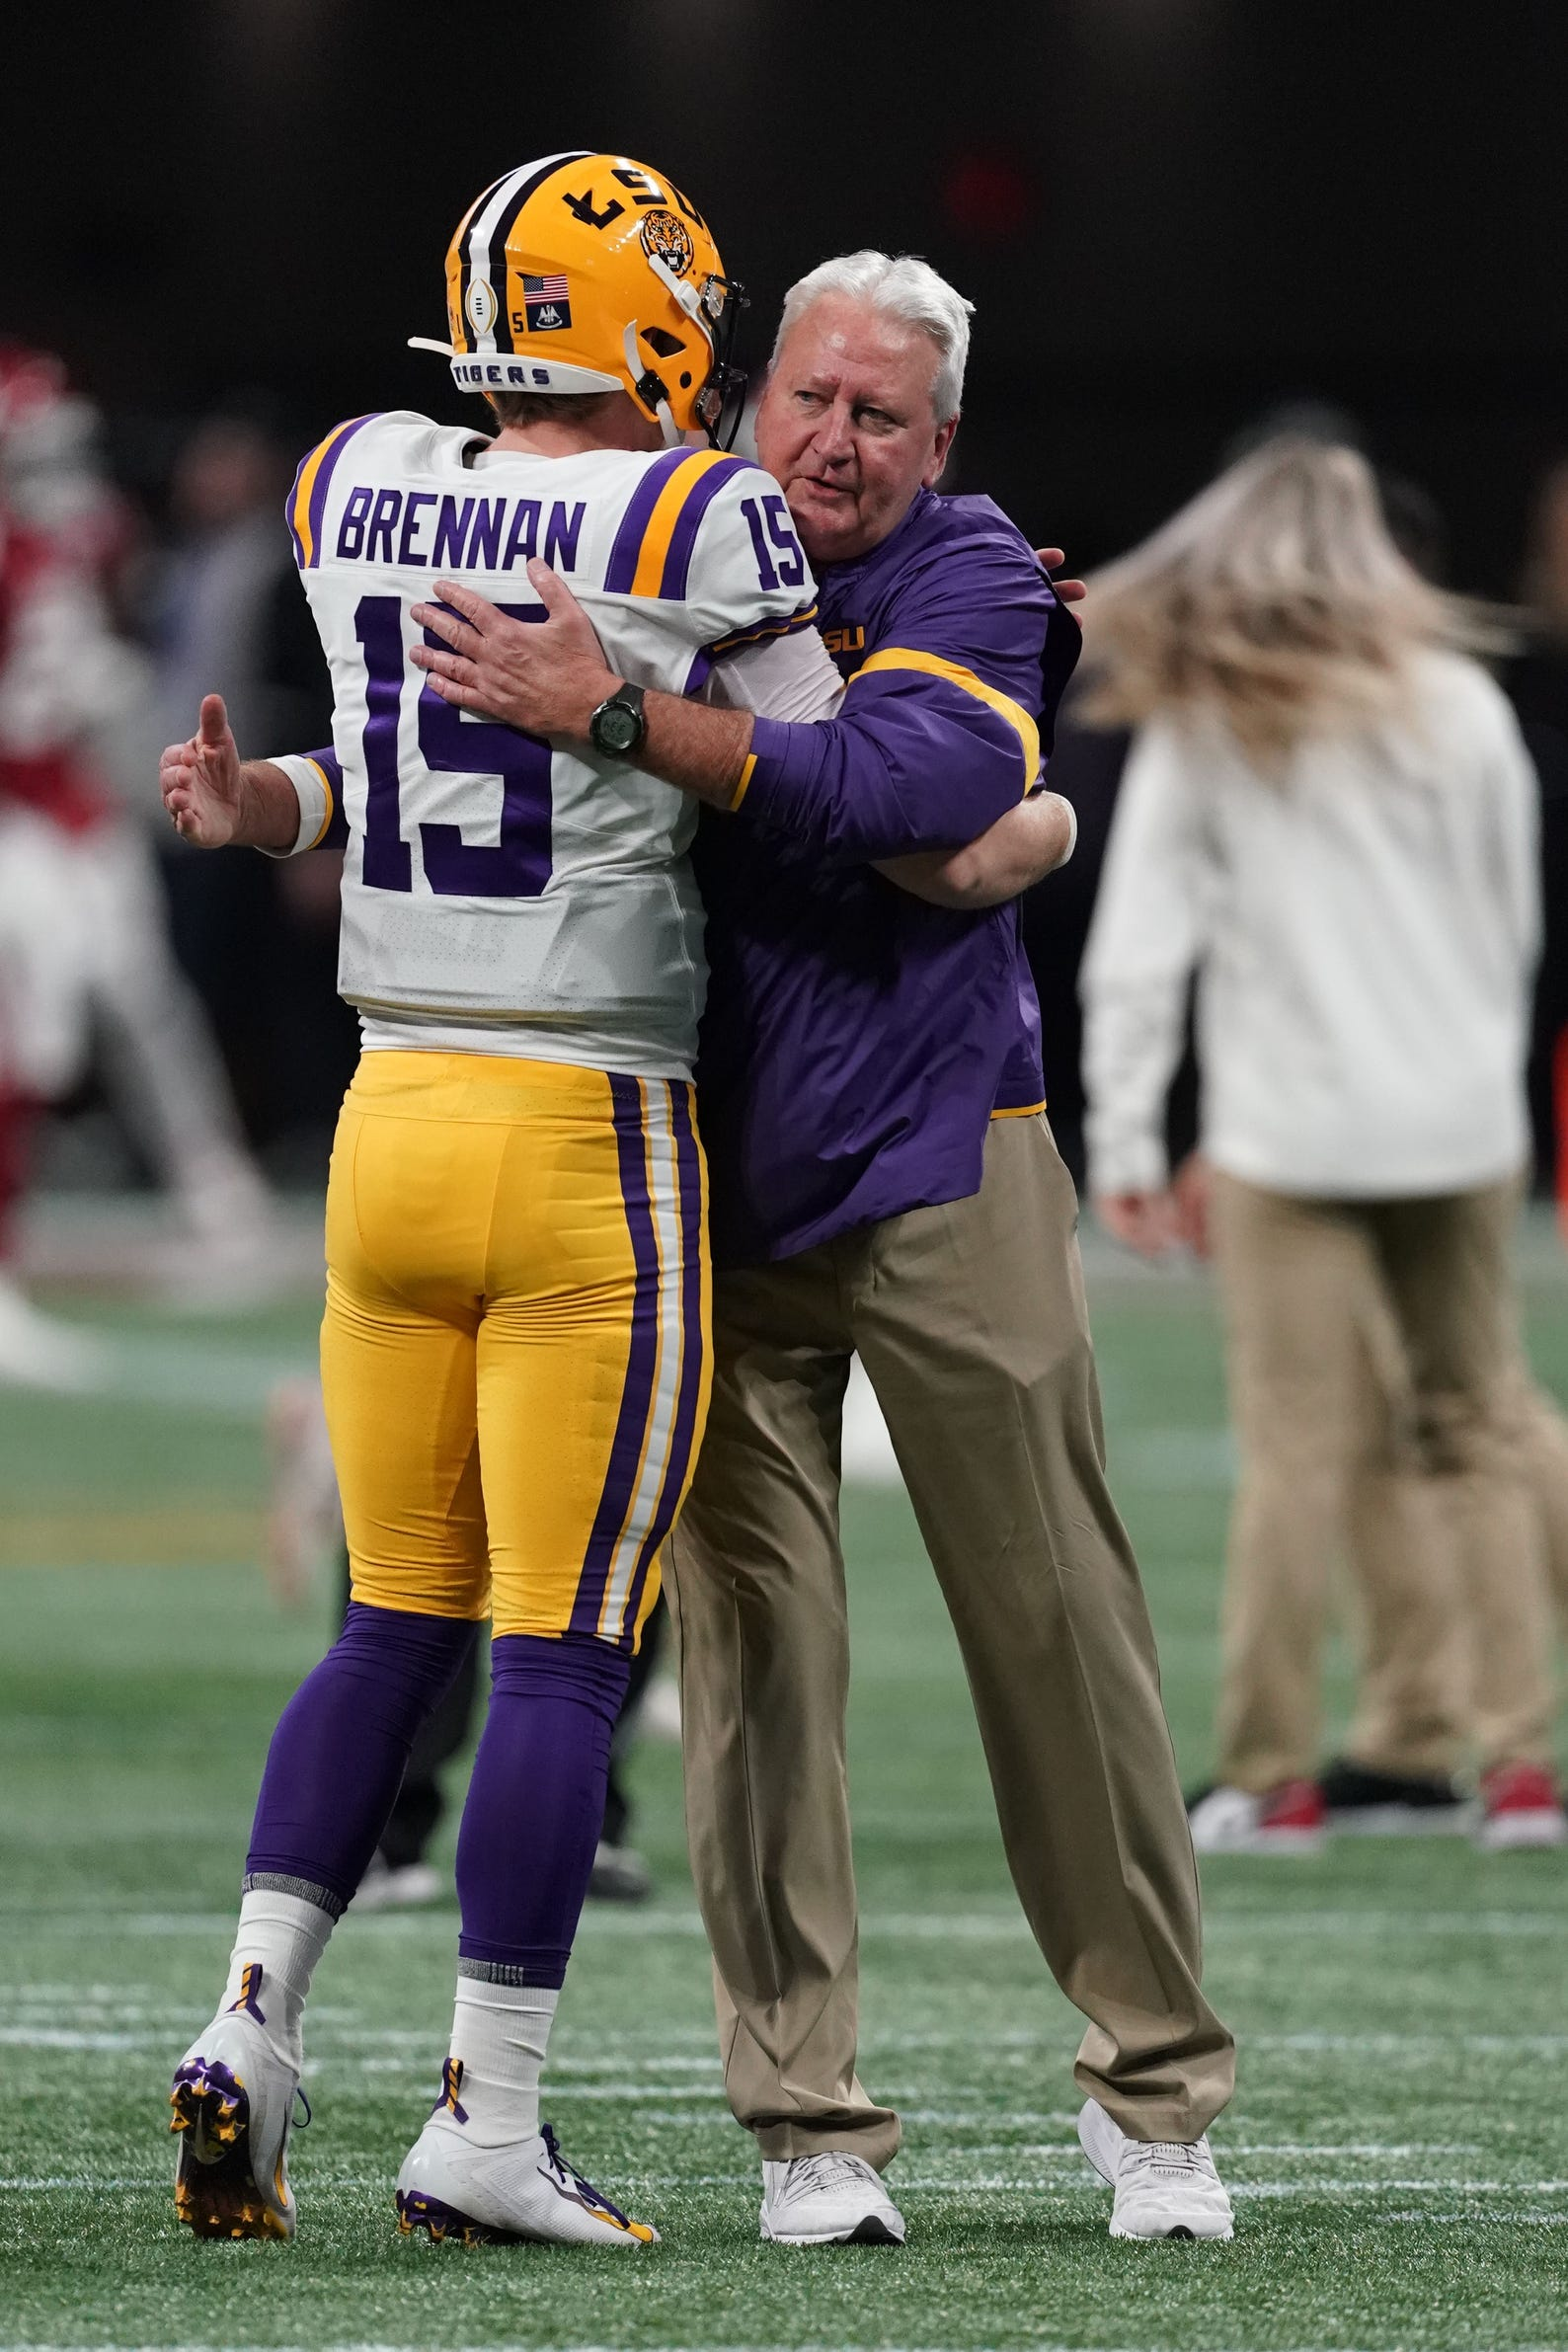 Dec 28, 2019; Atlanta, Georgia, USA; LSU Tigers offensive coordinator/quarterbacks coach Steve Ensminger reacts with quarterback Myles Brennan (15) before the 2019 Peach Bowl college football playoff semifinal game against the Oklahoma Sooners. Mandatory Credit: John David Mercer-USA TODAY Sports